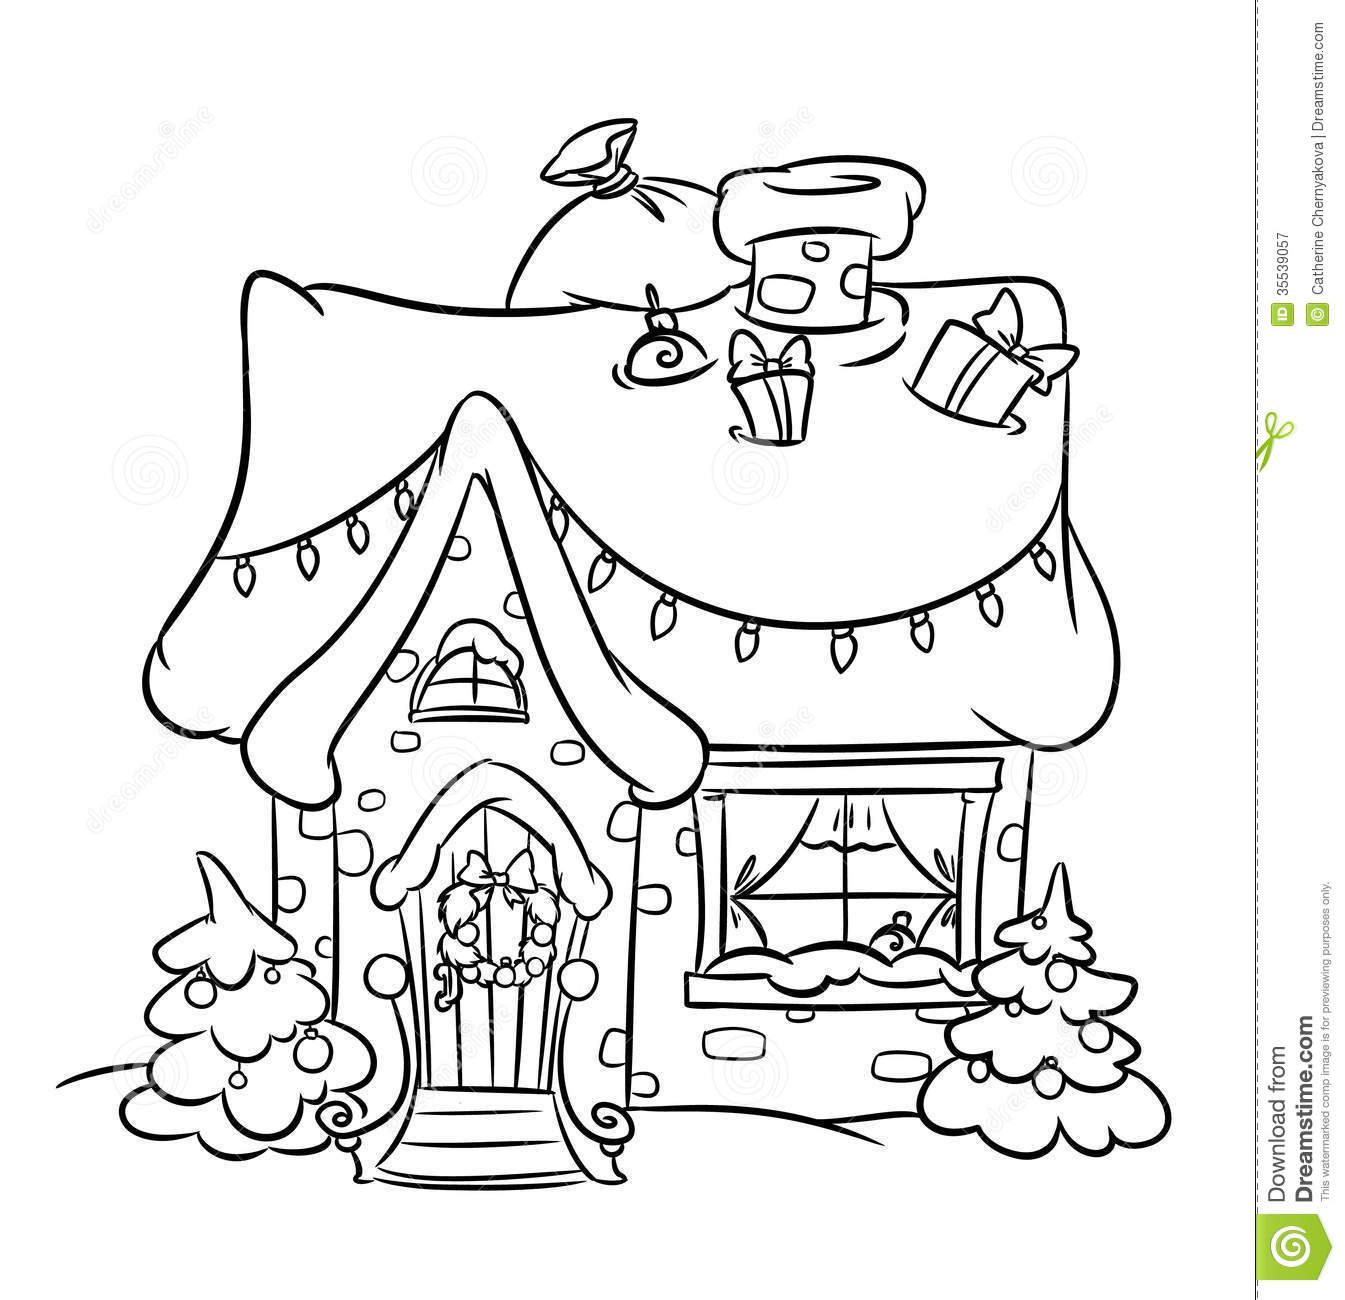 Free coloring pages houses and homes - Christmas Snow House Coloring Pages Illustration Cartoon